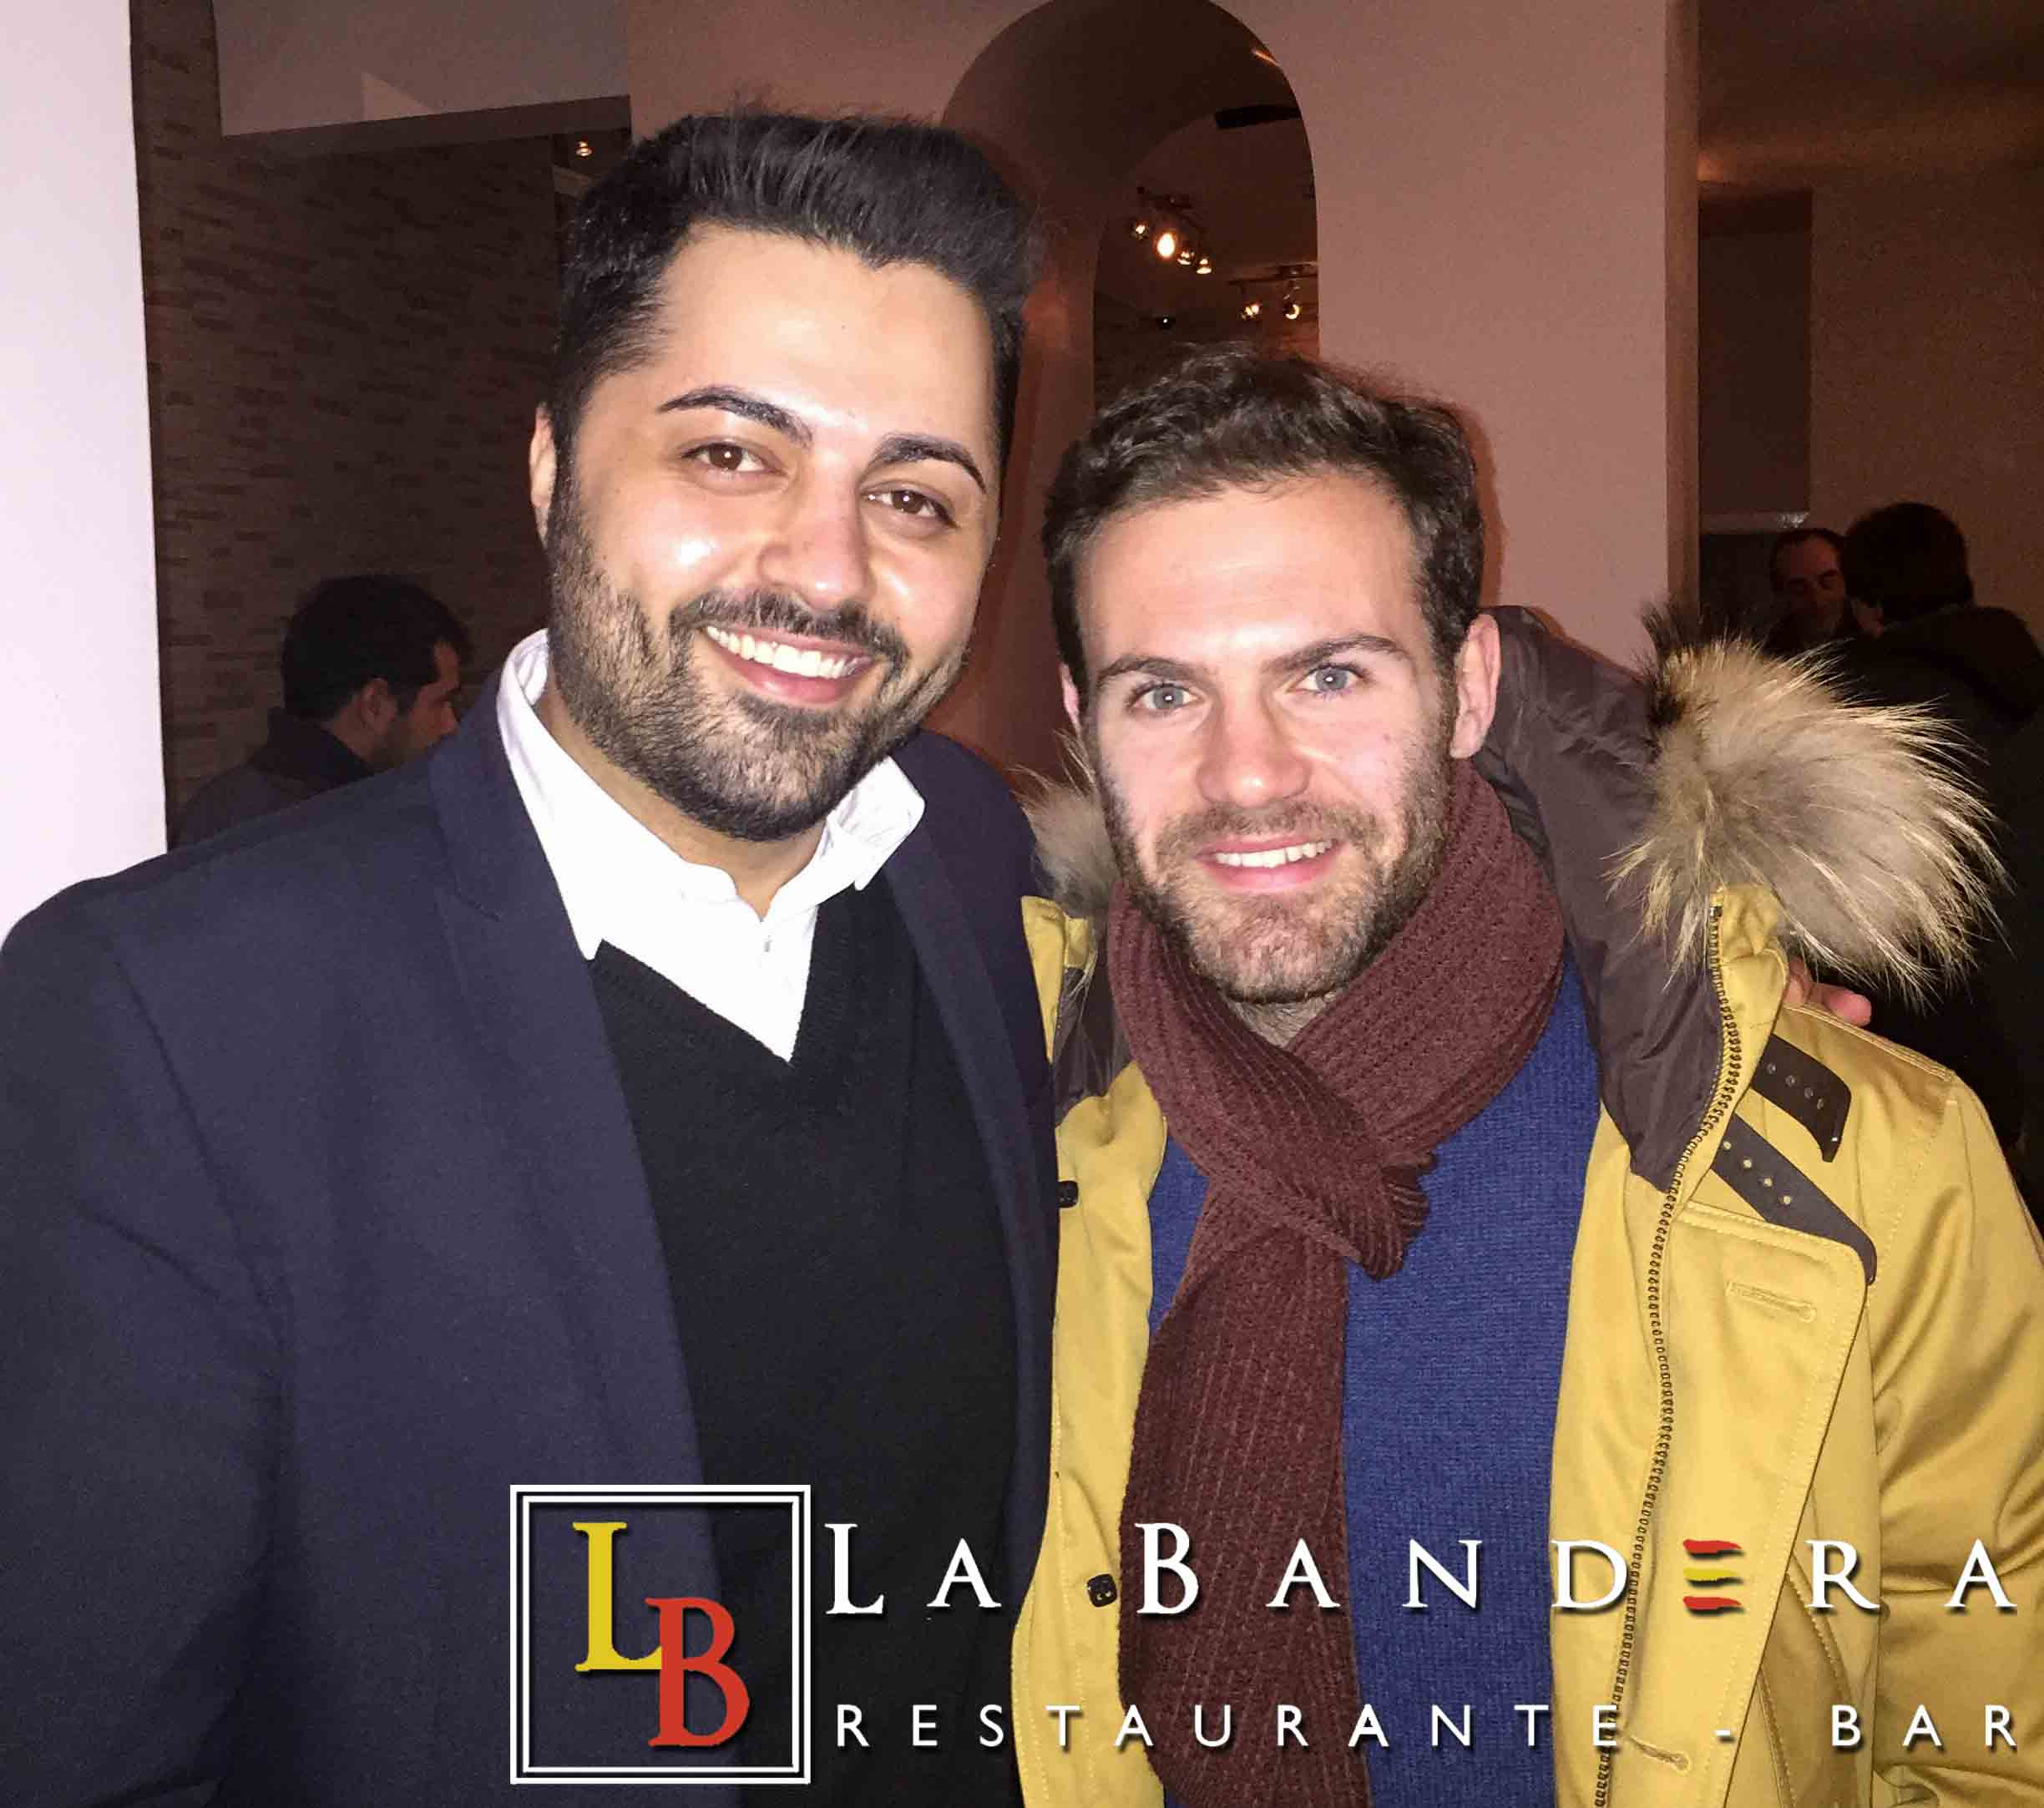 Juan Mata at La Bandera